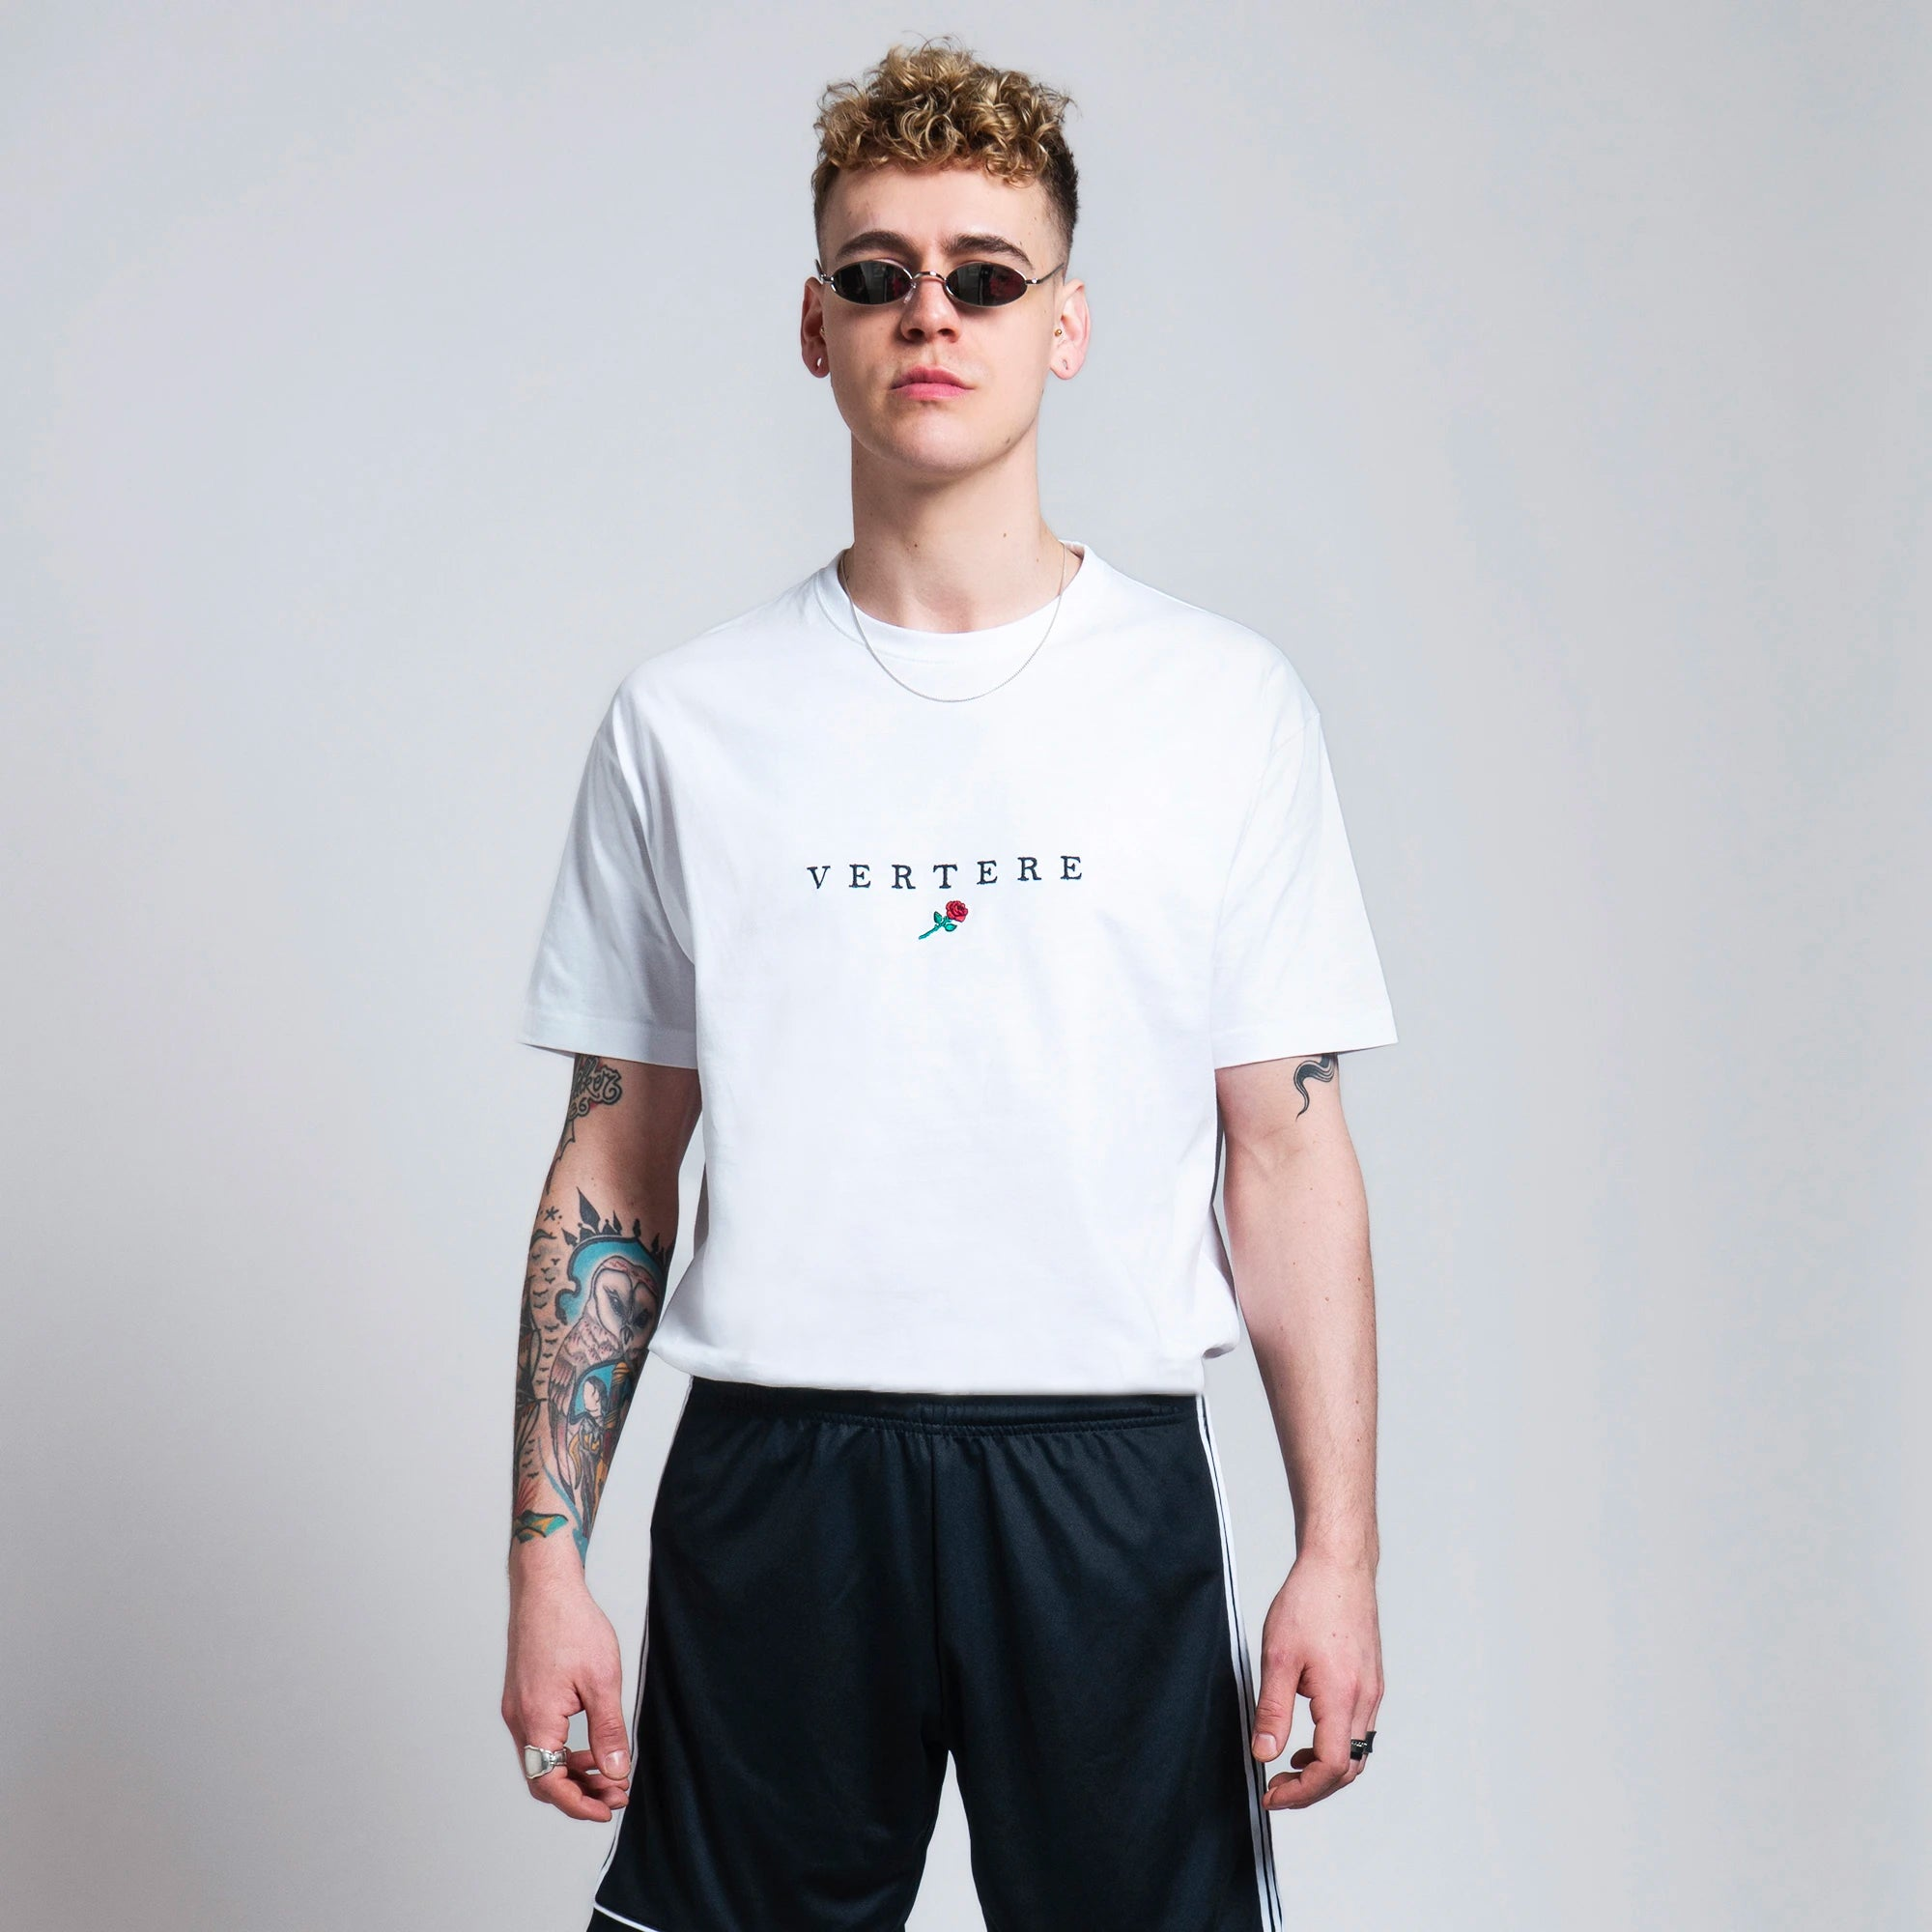 VERTERE ROSE T-SHIRT - WHITE